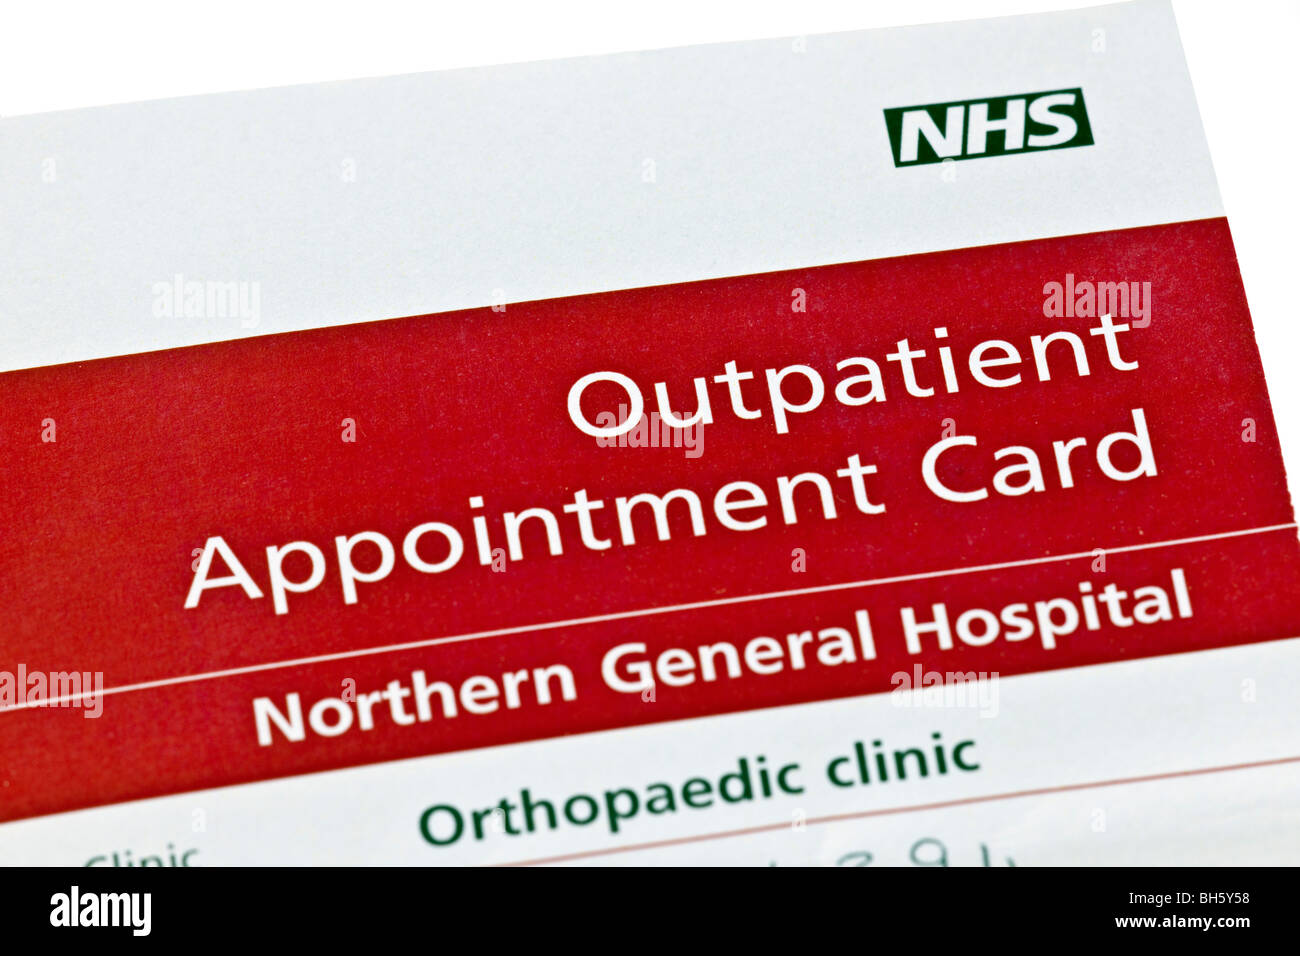 NHS outpatient appointment card - Stock Image